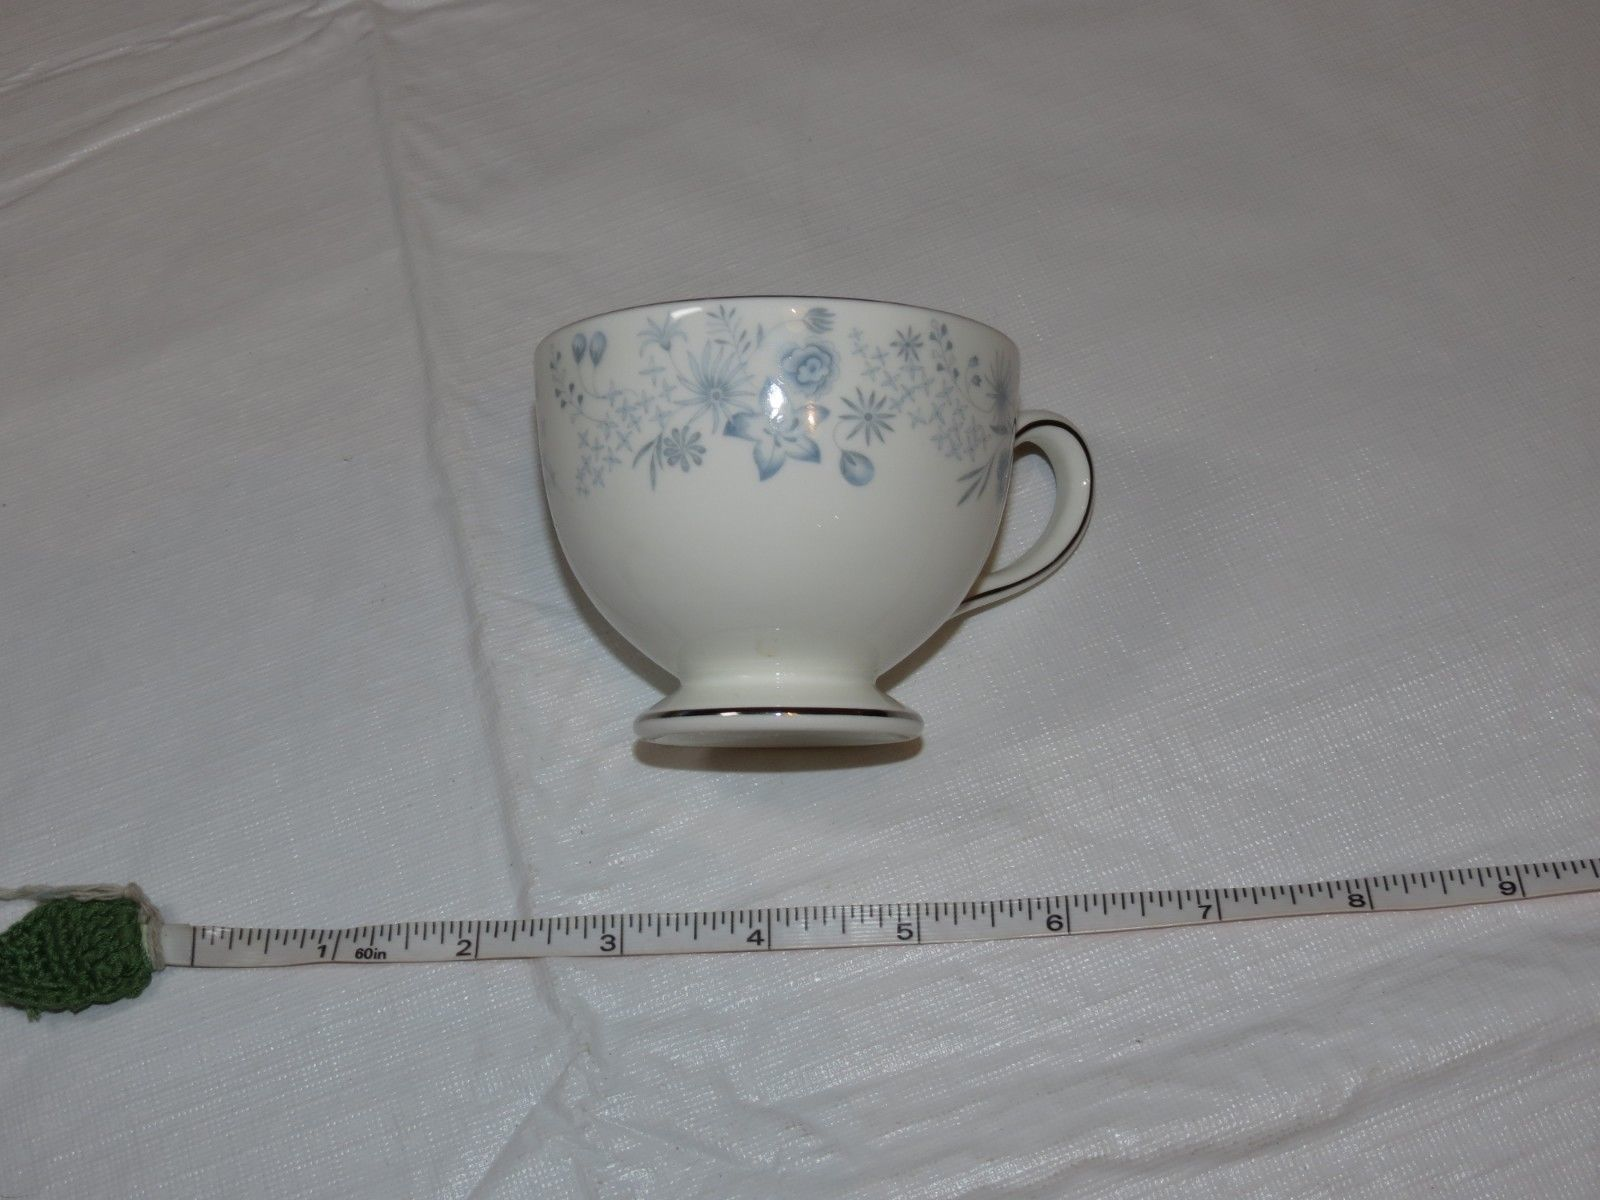 Wedgwood Belle Fleur Bone China 1 Tea Cup Made in England white blue ! image 3